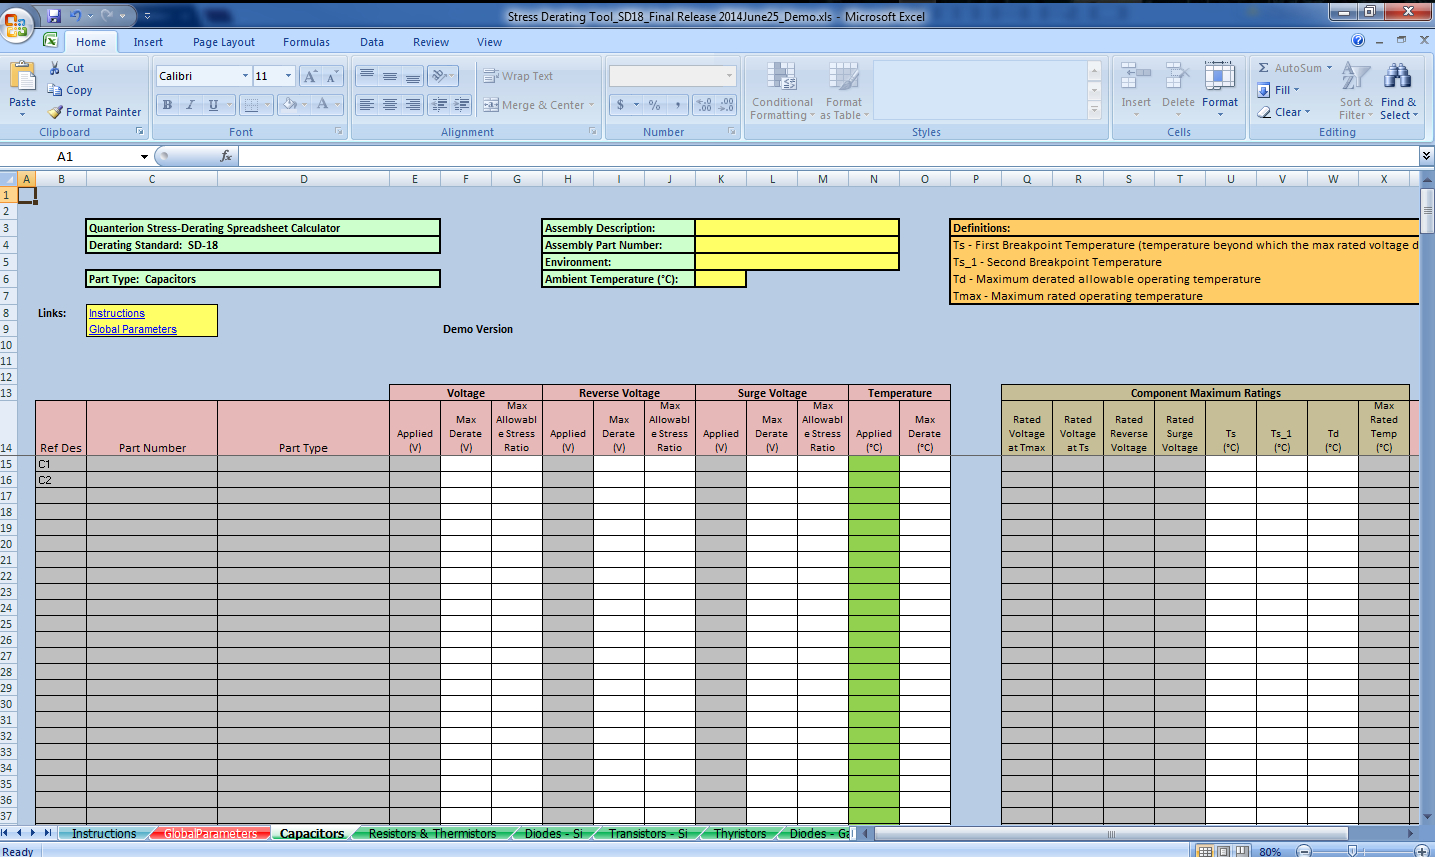 Spreadsheet Calculator In Stressderating Spreadsheet Calculator – Quanterion Solutions